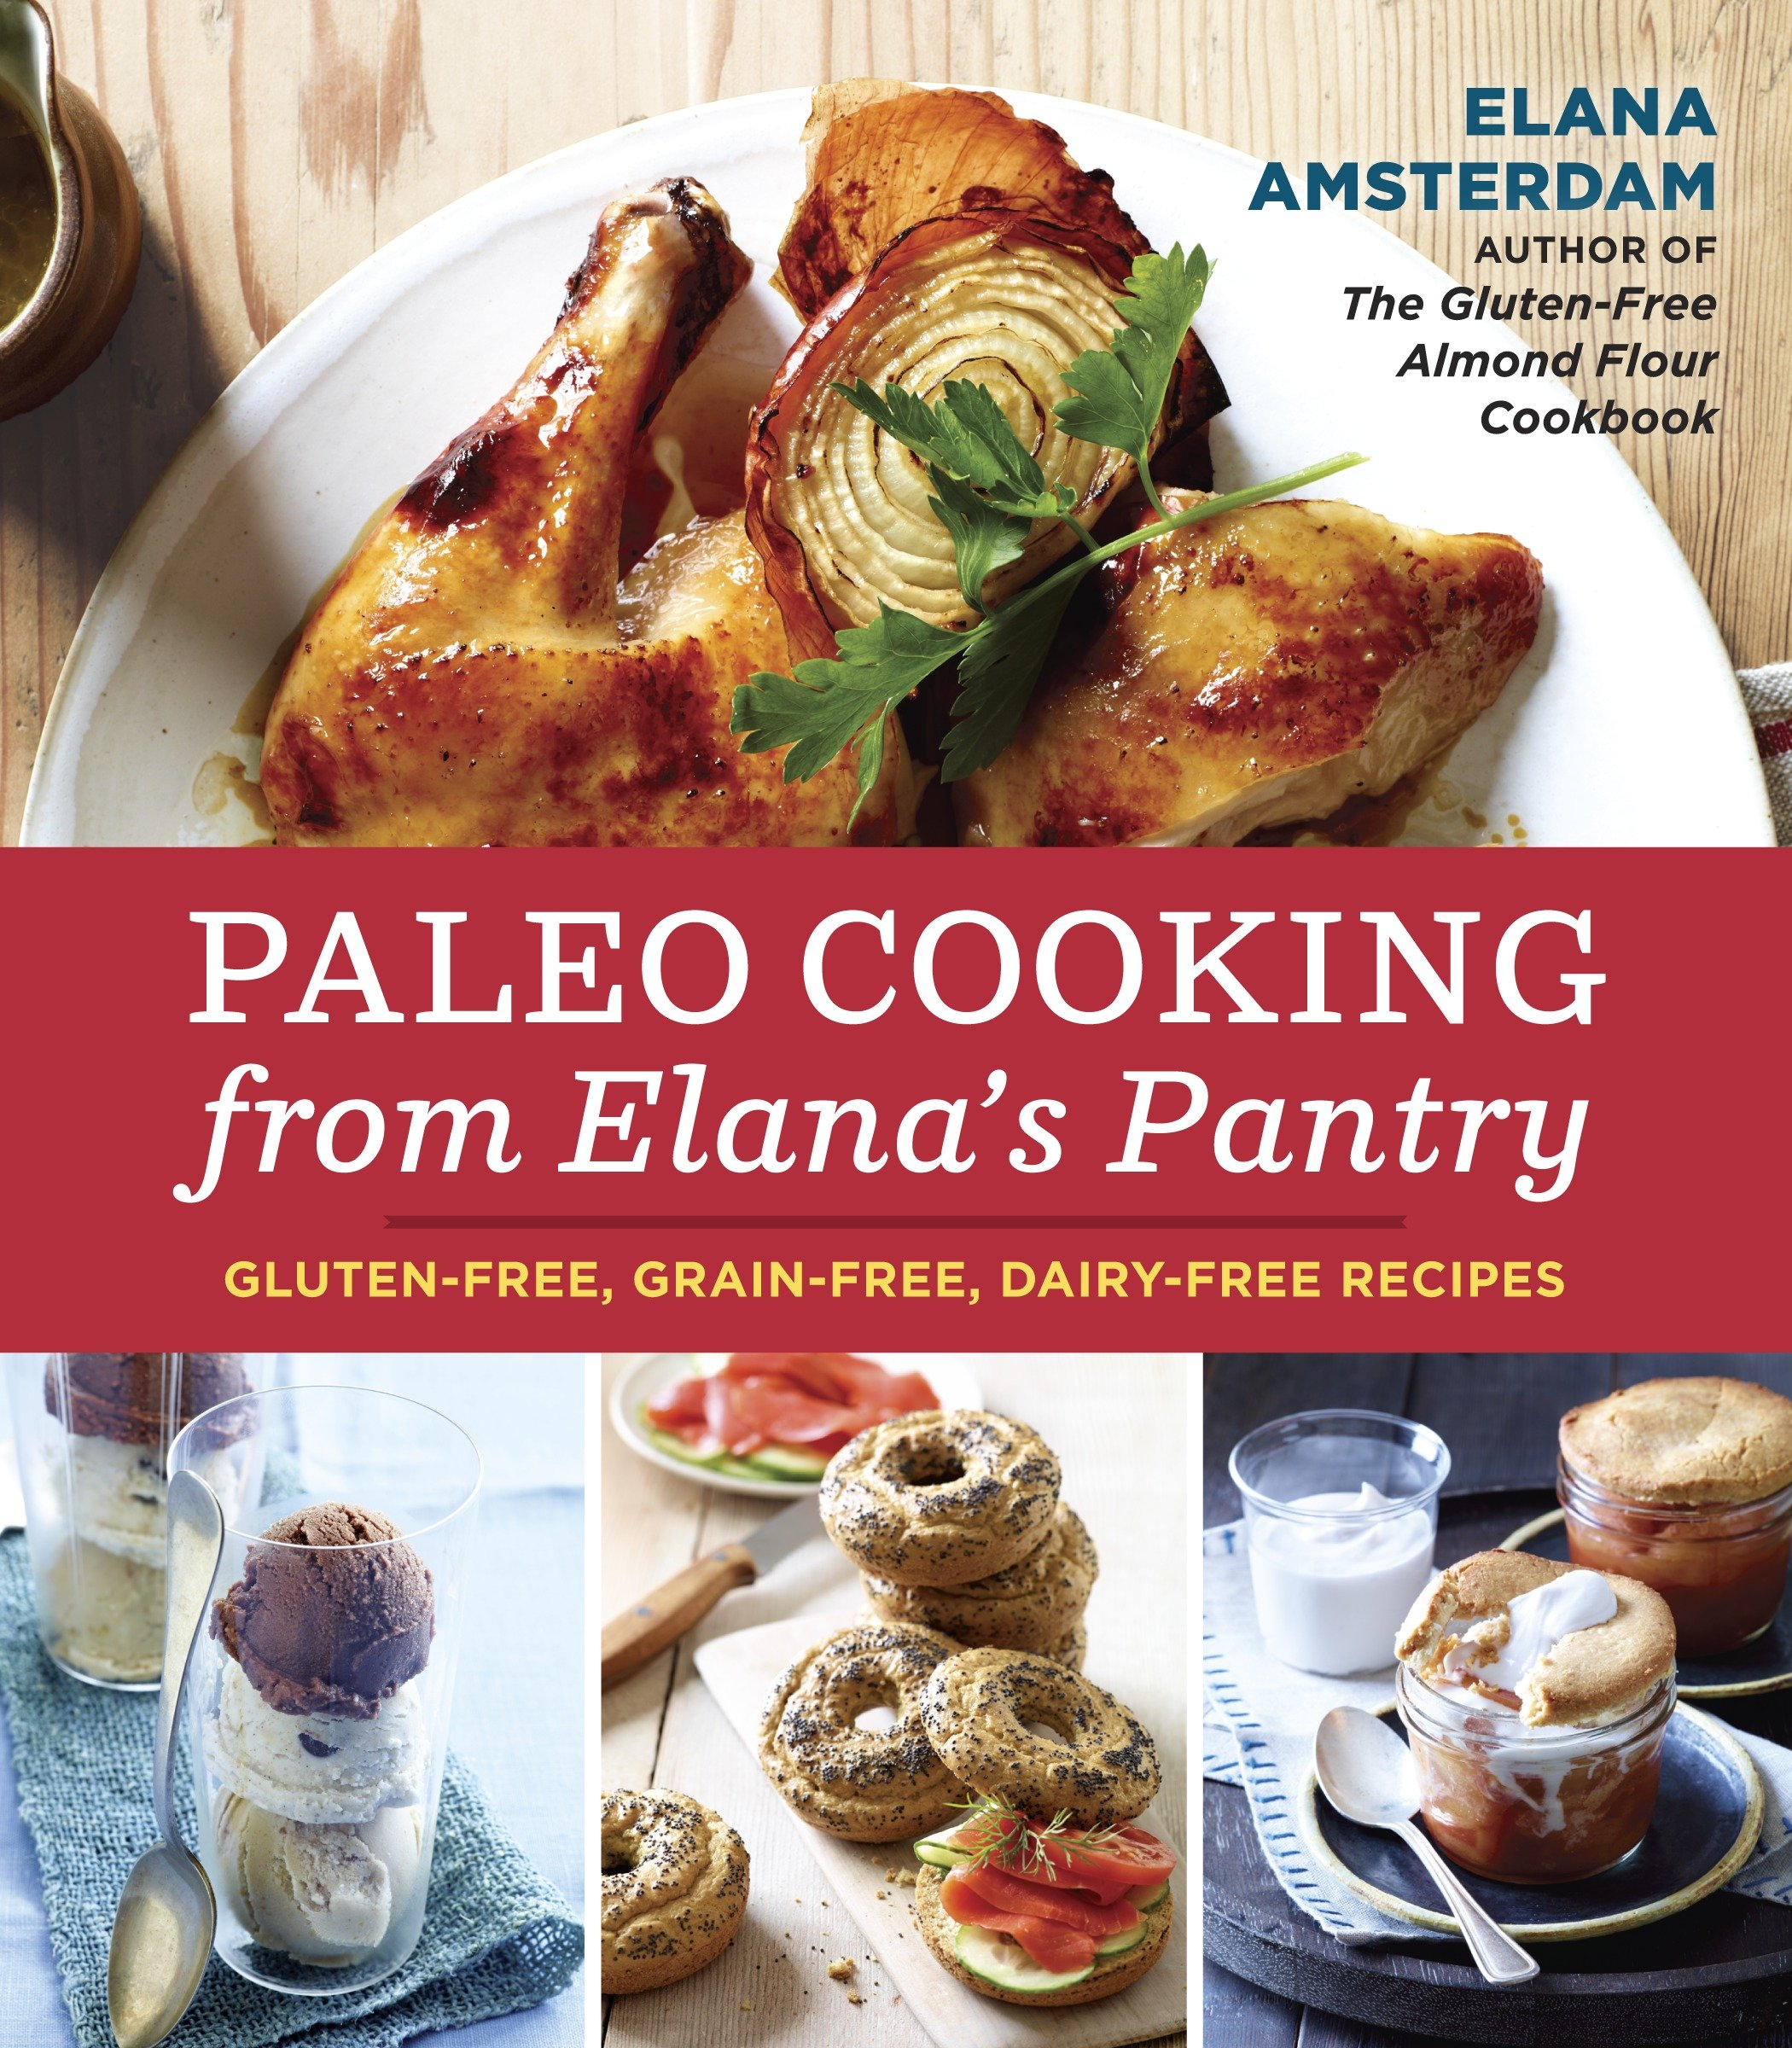 Cover image for Paleo Cooking from Elana's Pantry [electronic resource] : Gluten-Free, Grain-Free, Dairy-Free Recipes (A Cookbook)